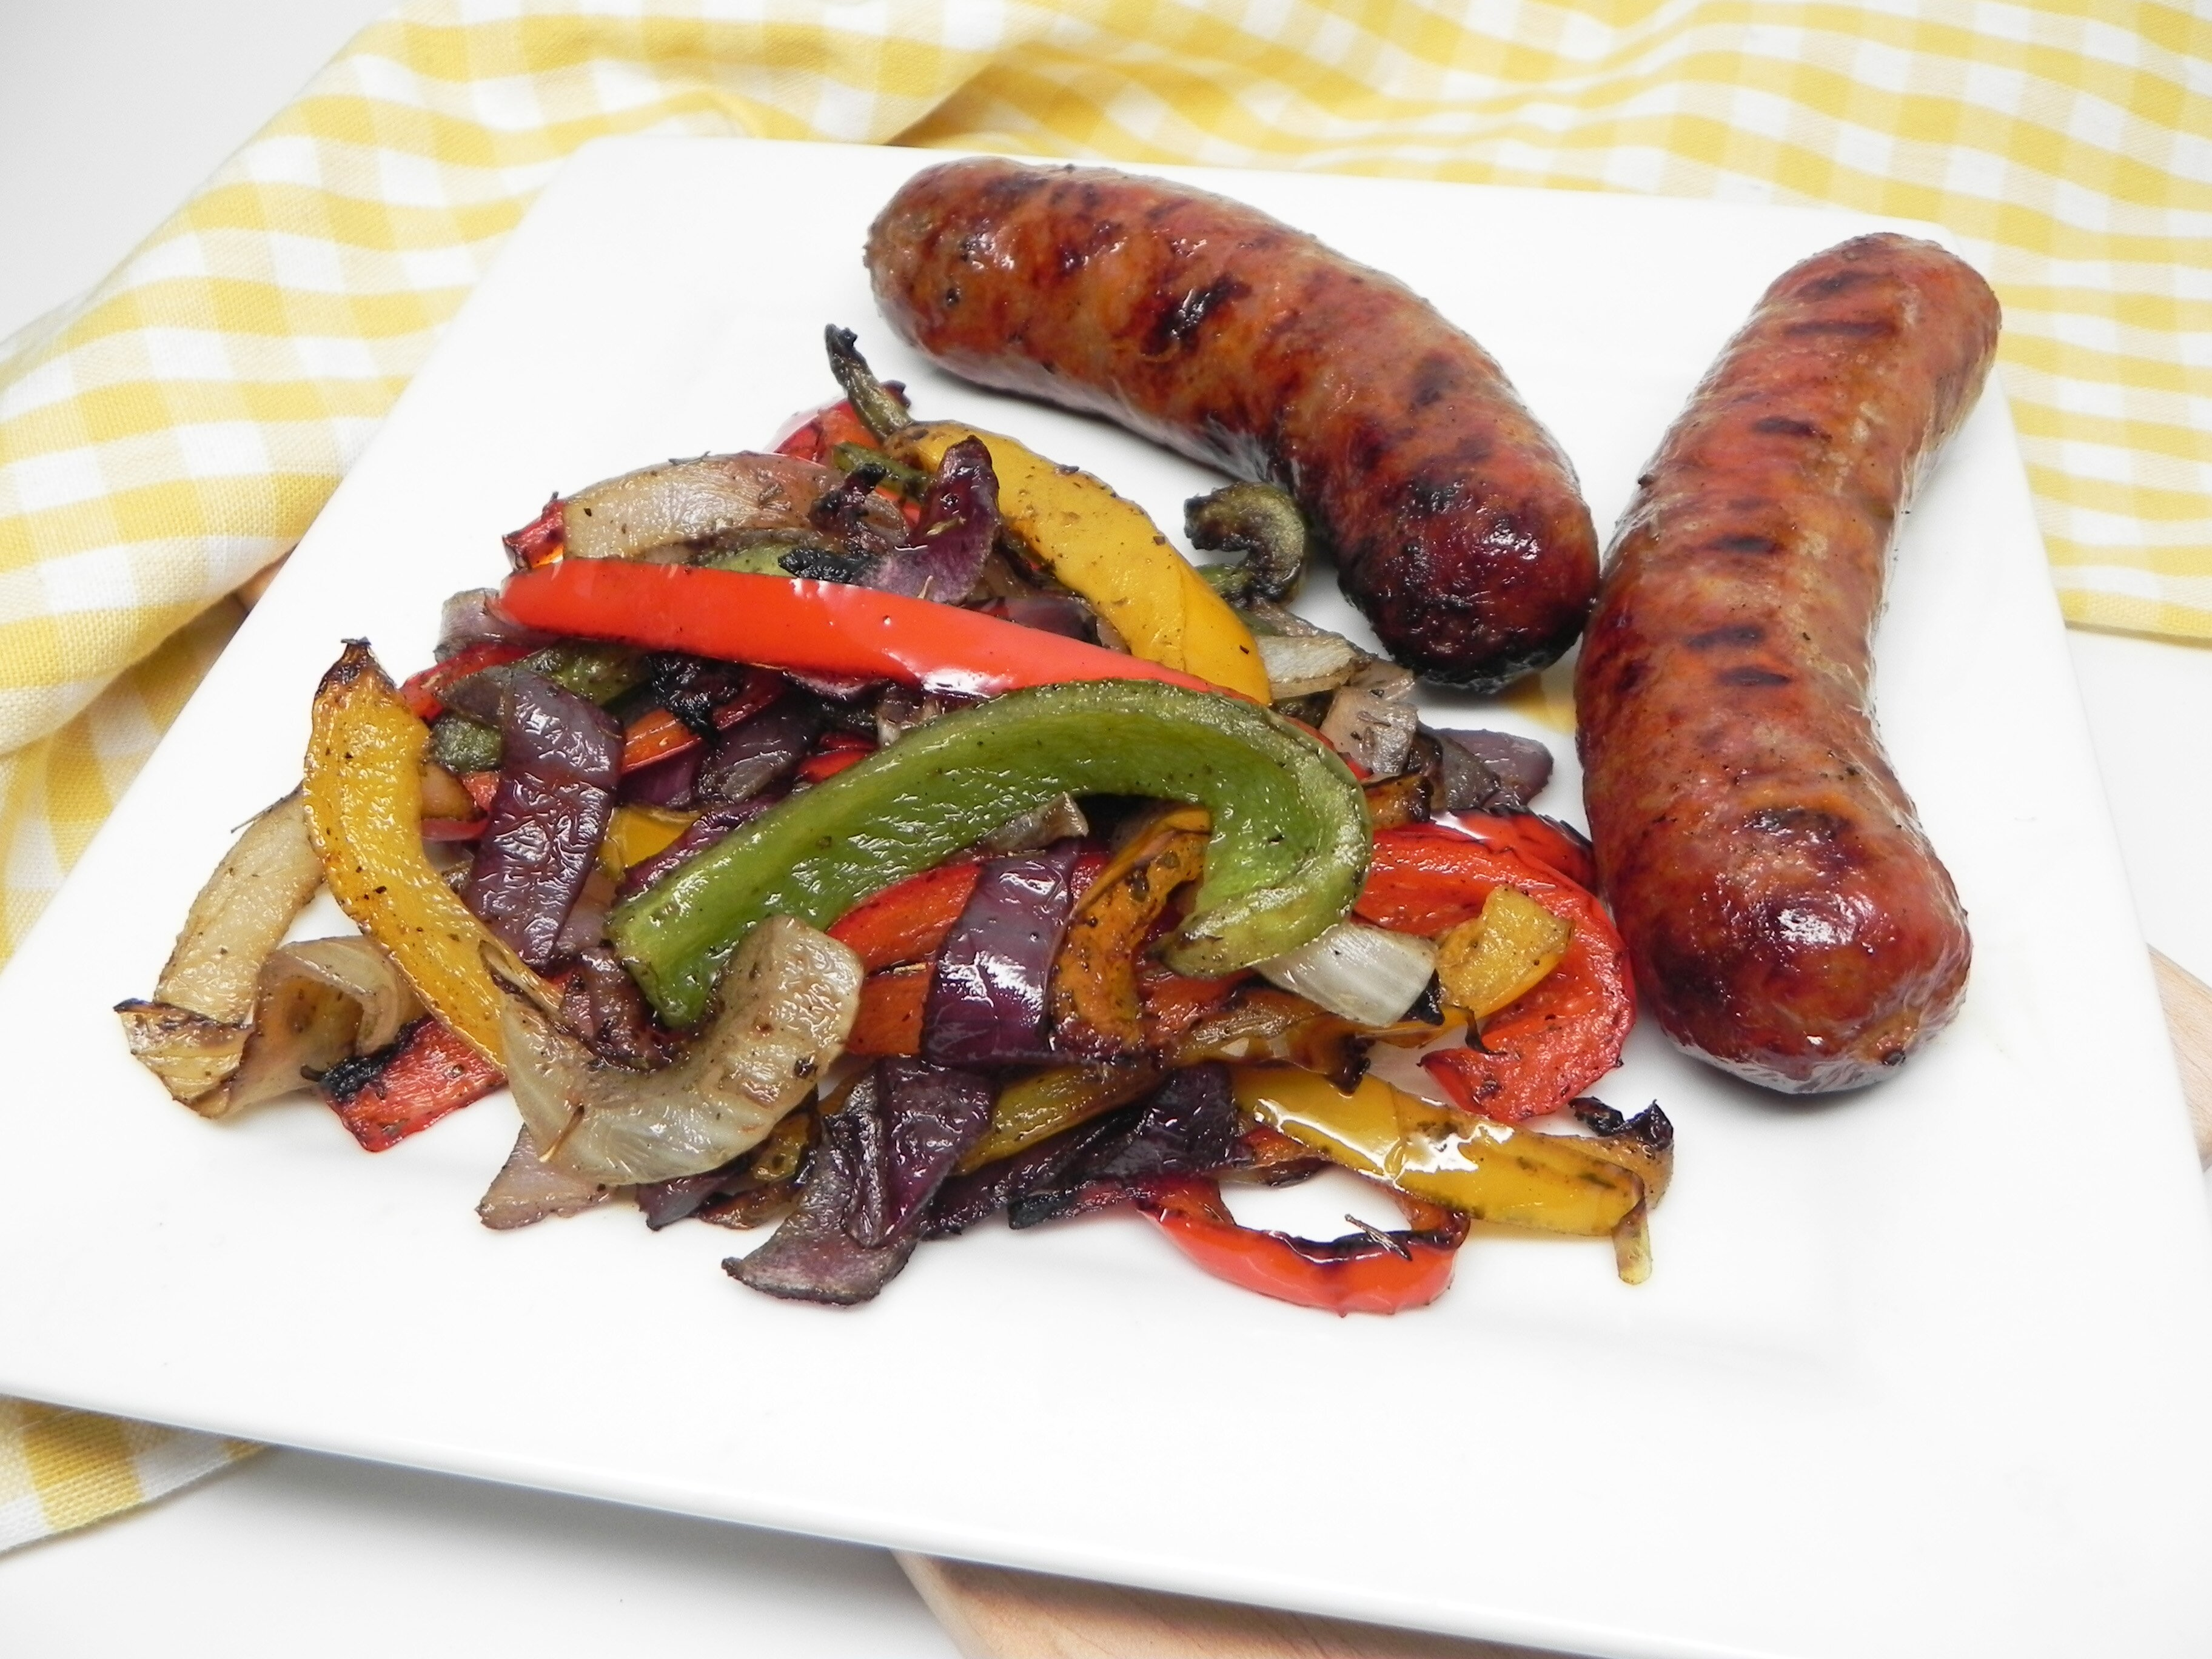 grilled italian sausage with peppers and onions